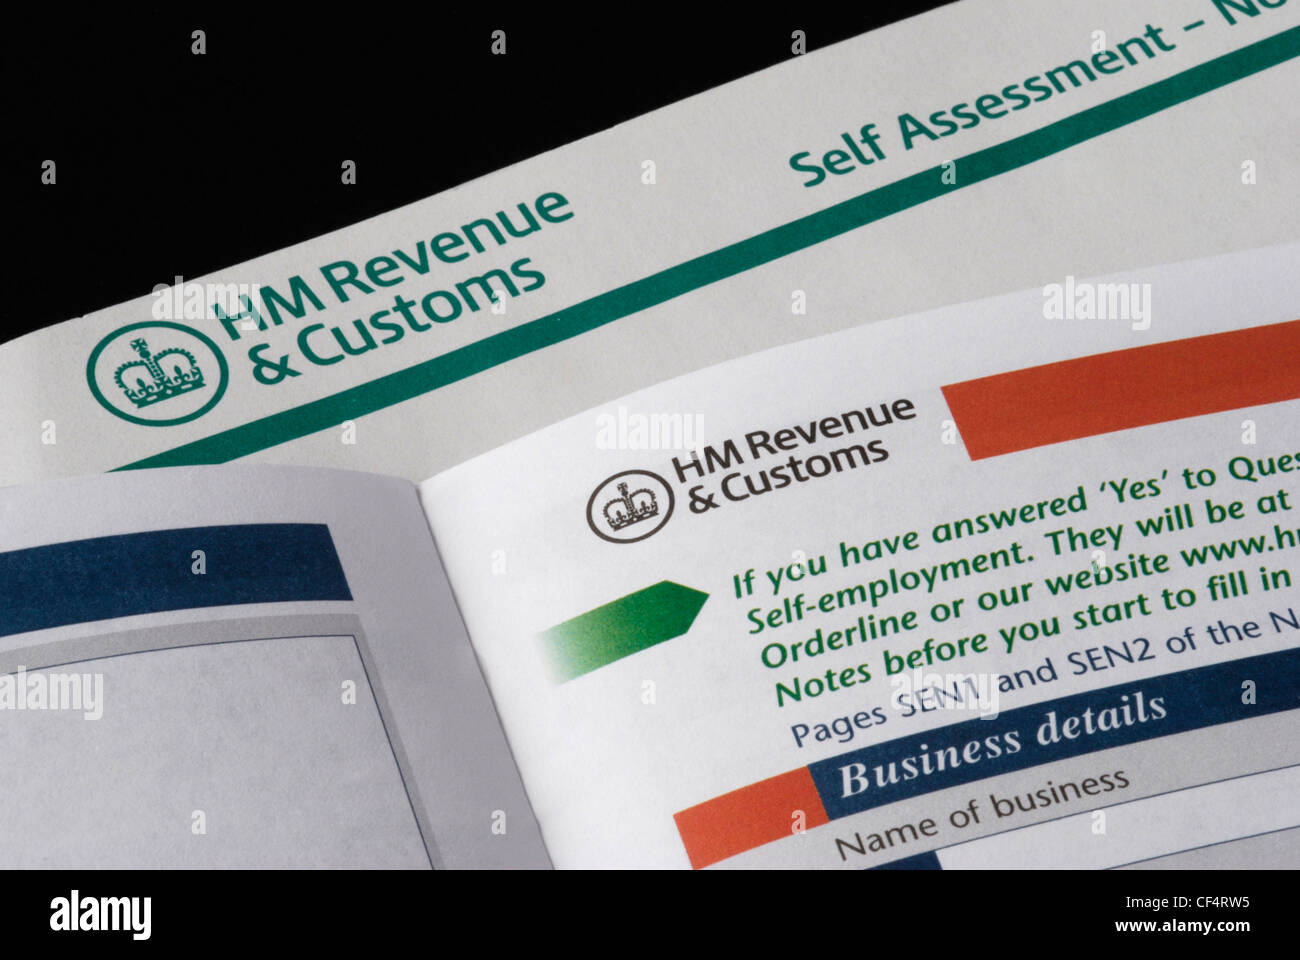 Hmrc Uk Stock Photos & Hmrc Uk Stock Images - Alamy